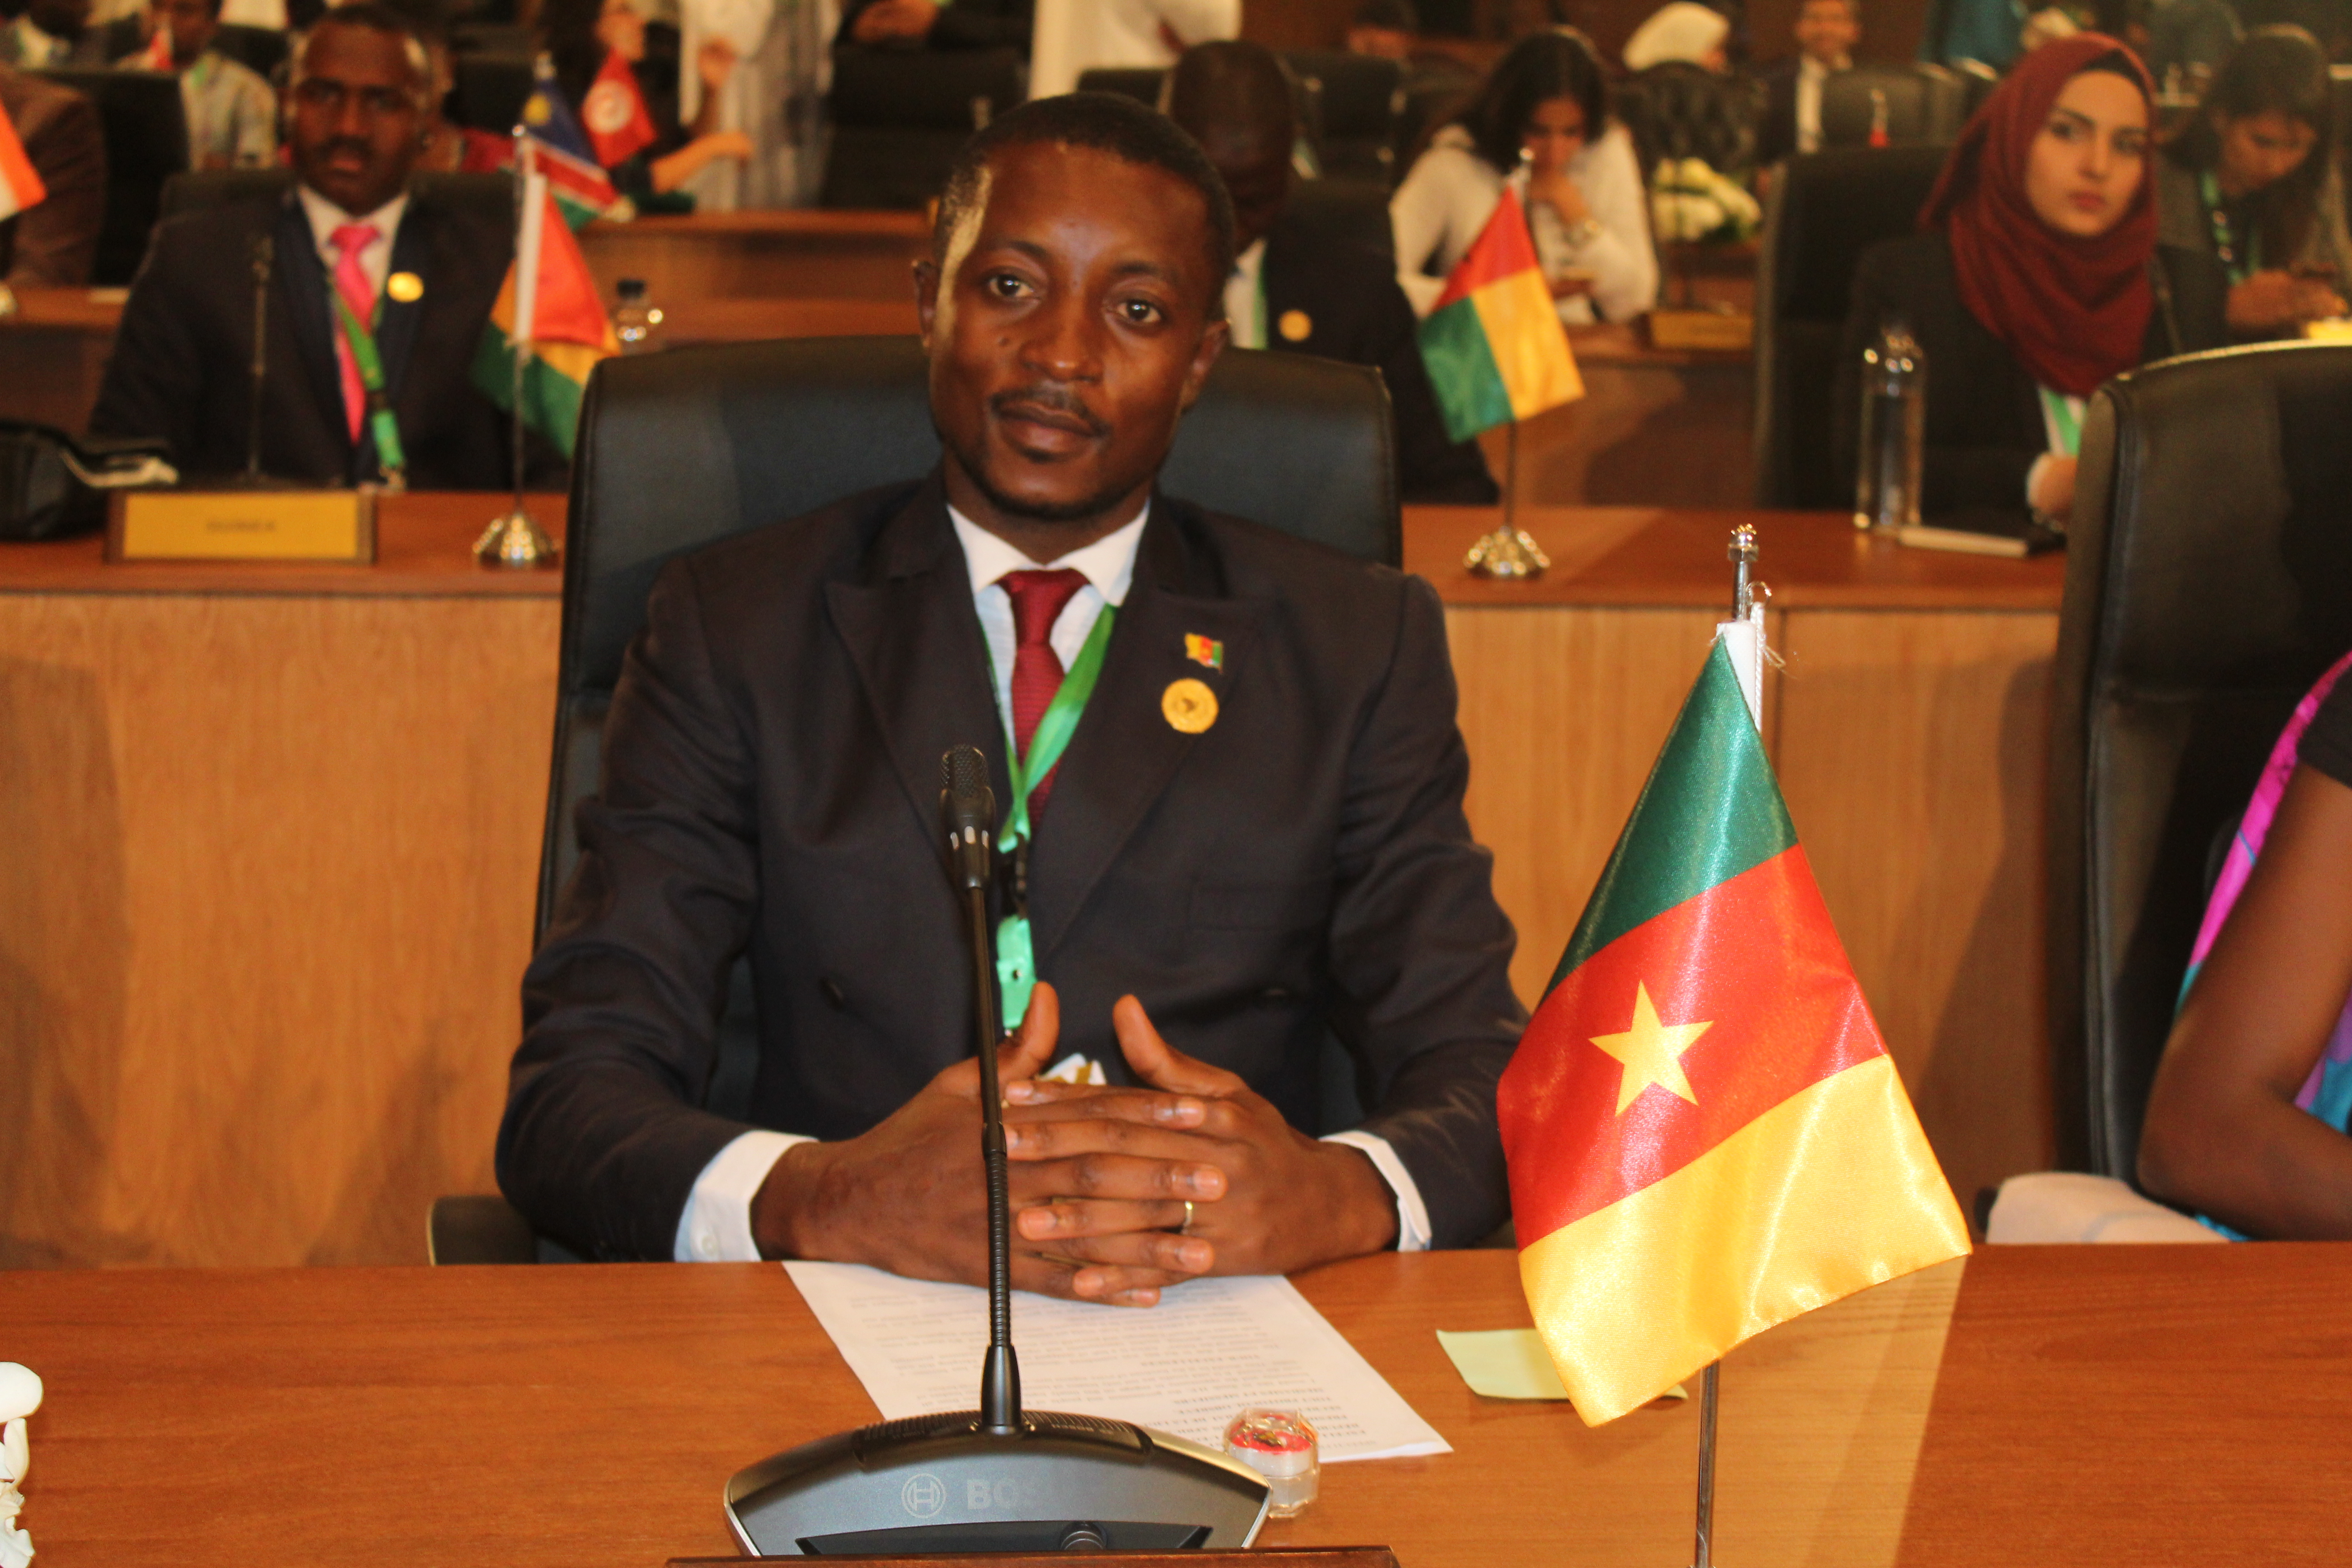 Photo of Mofor A. Wopimazi Appointed Cameroon's Youth Ambassador To The Arab, Africa Council For Integration And Development.